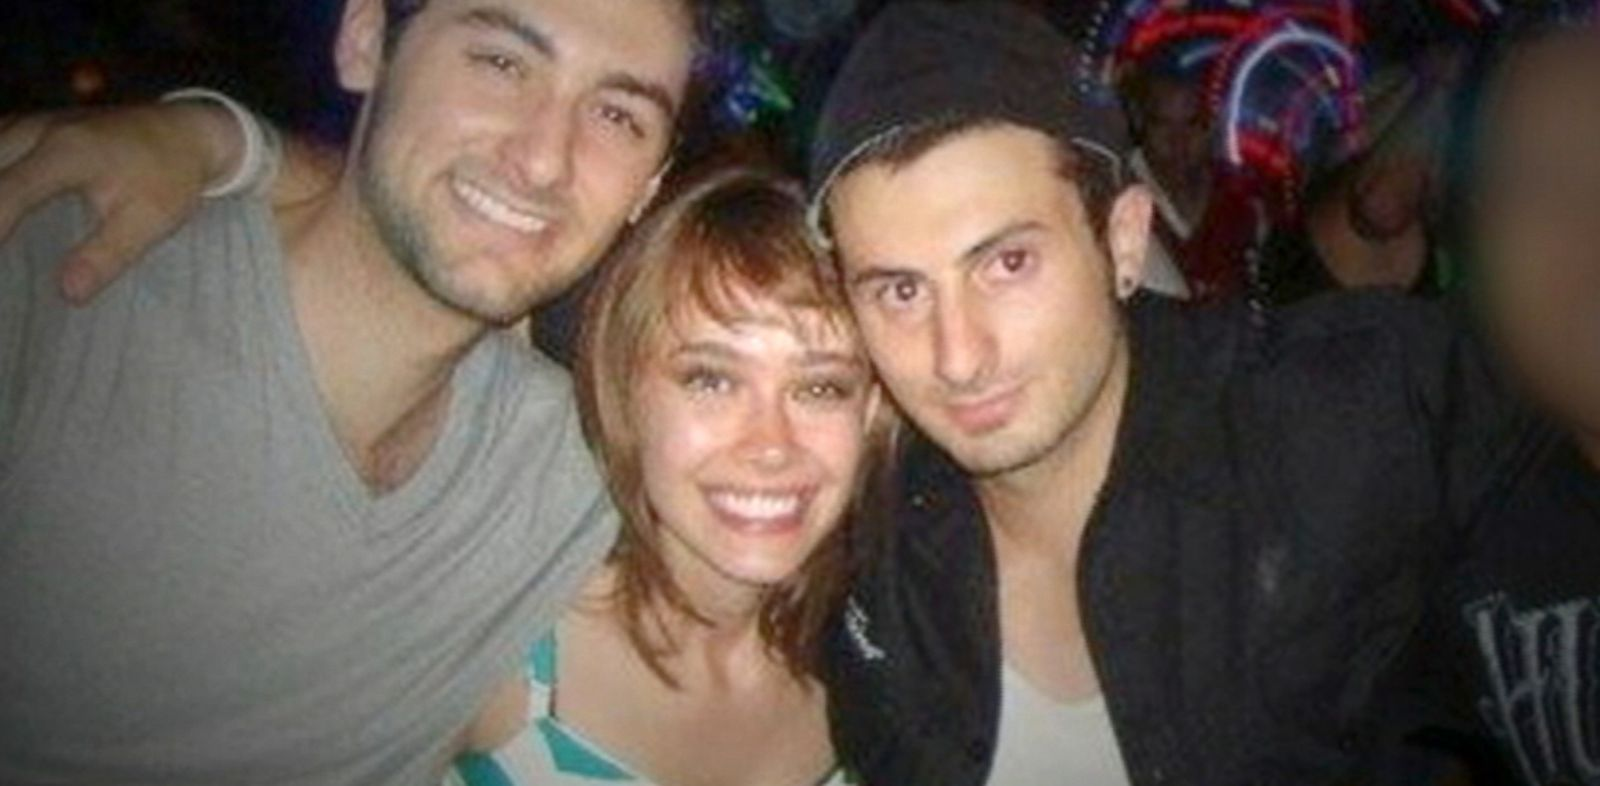 PHOTO: Gianni Belvedere, left, Ilona Flint and Salvatore Belvedere were shot to death in San Diego, Calif. in late 2013.